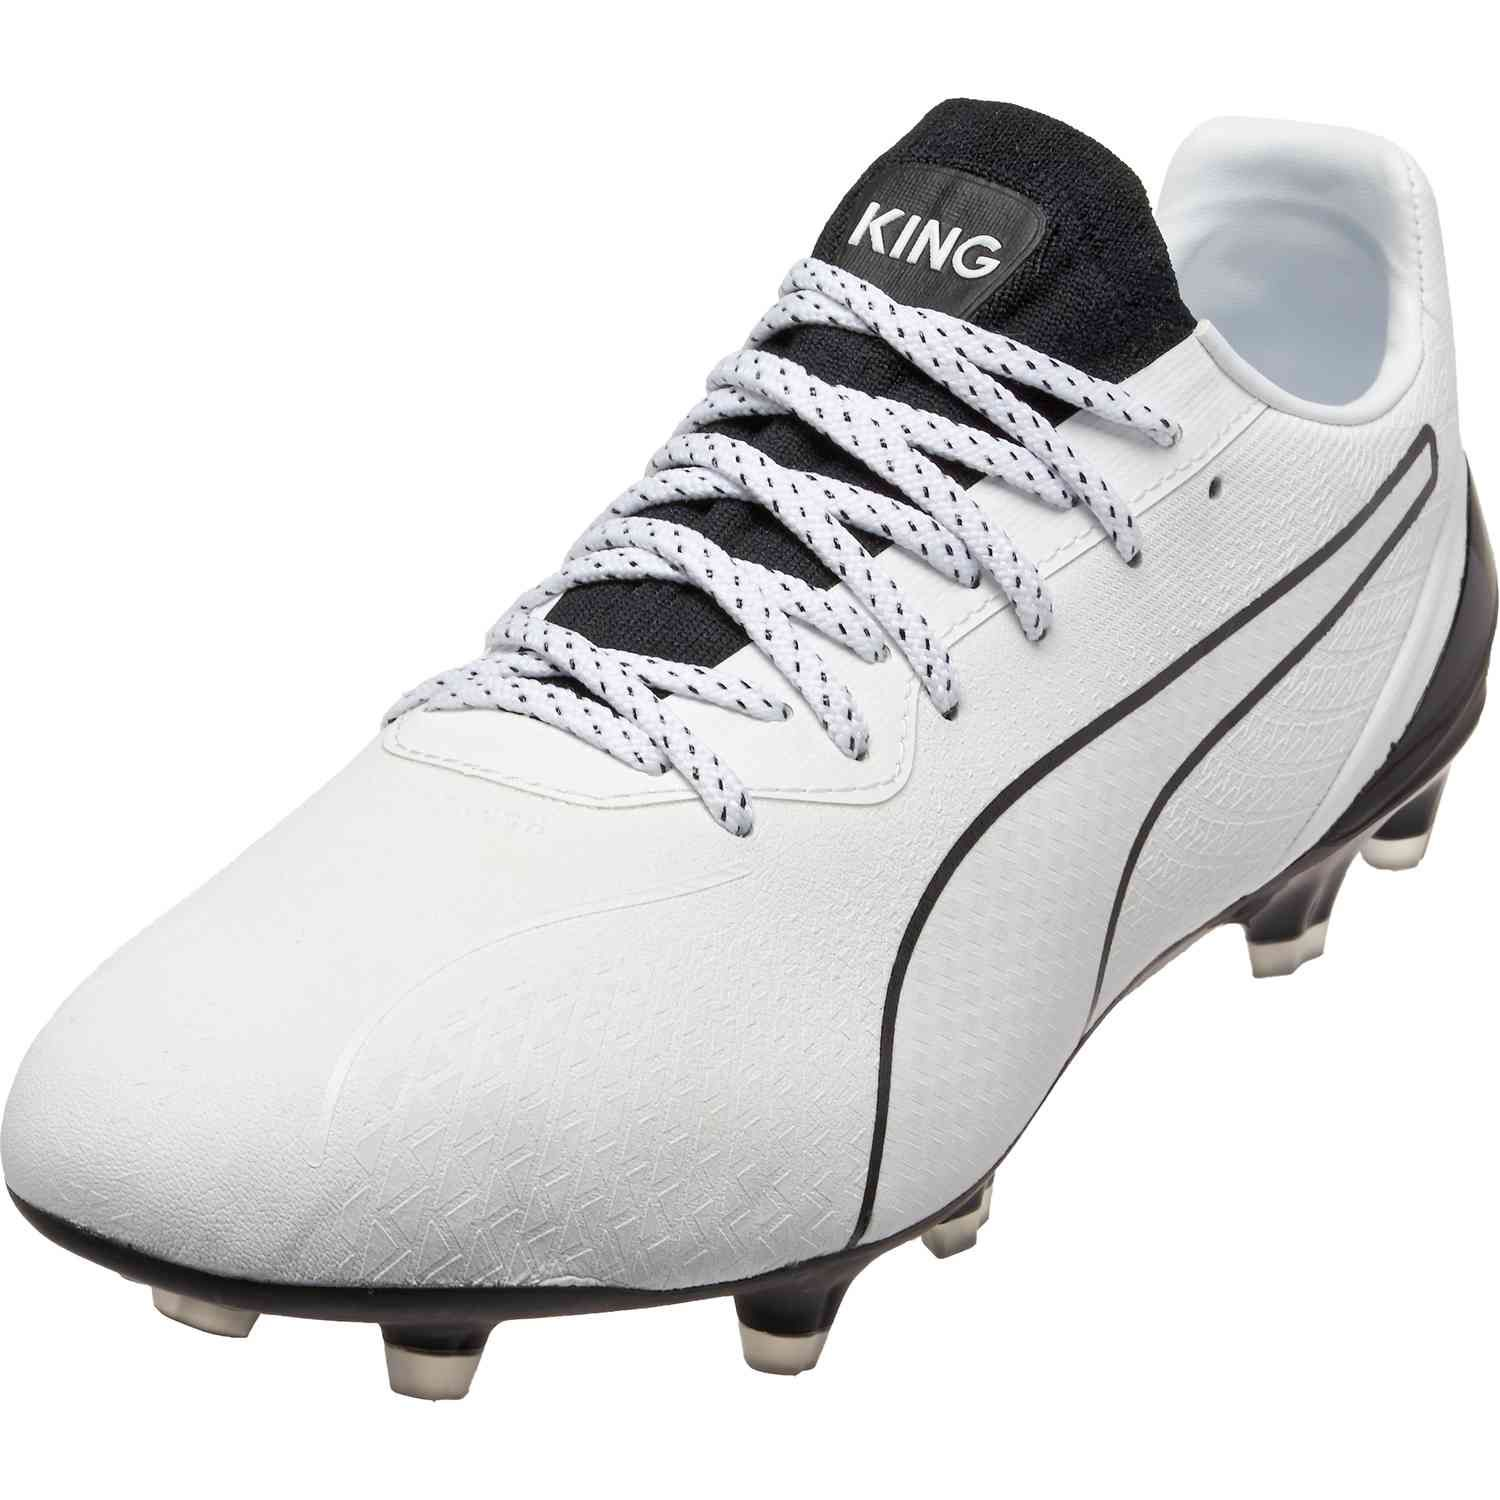 Puma King Lazer Touch Fg White Black Soccerpro In 2020 Puma Football Boots Football Boots Puma